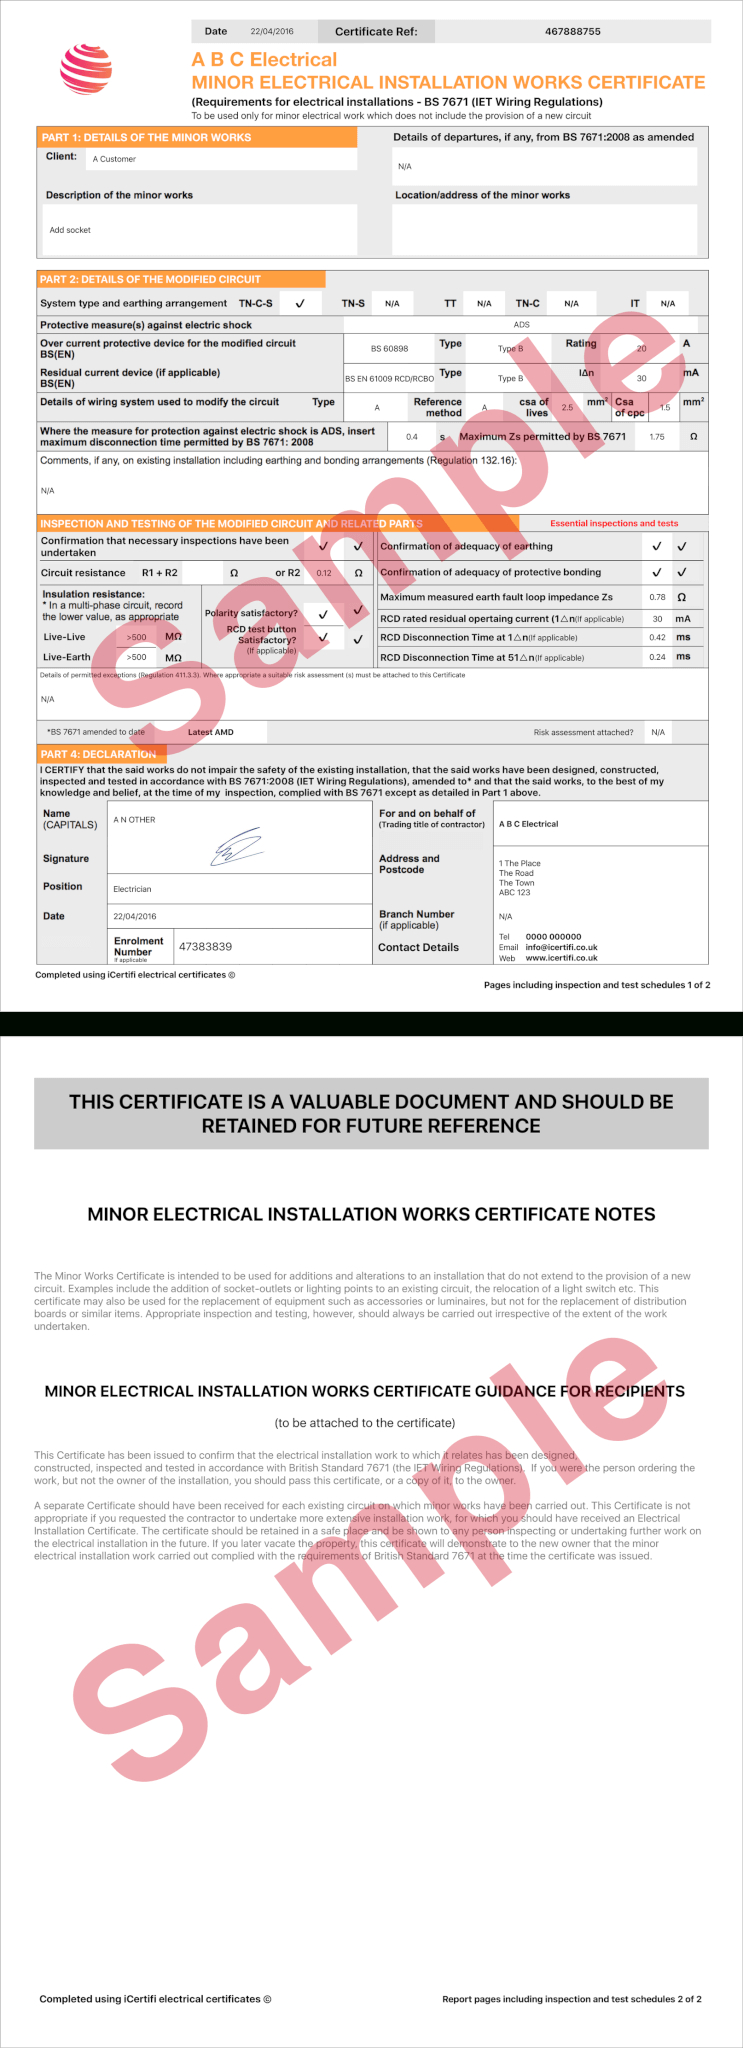 Electrical Certificate - Example Minor Works Certificate Inside Minor Electrical Installation Works Certificate Template